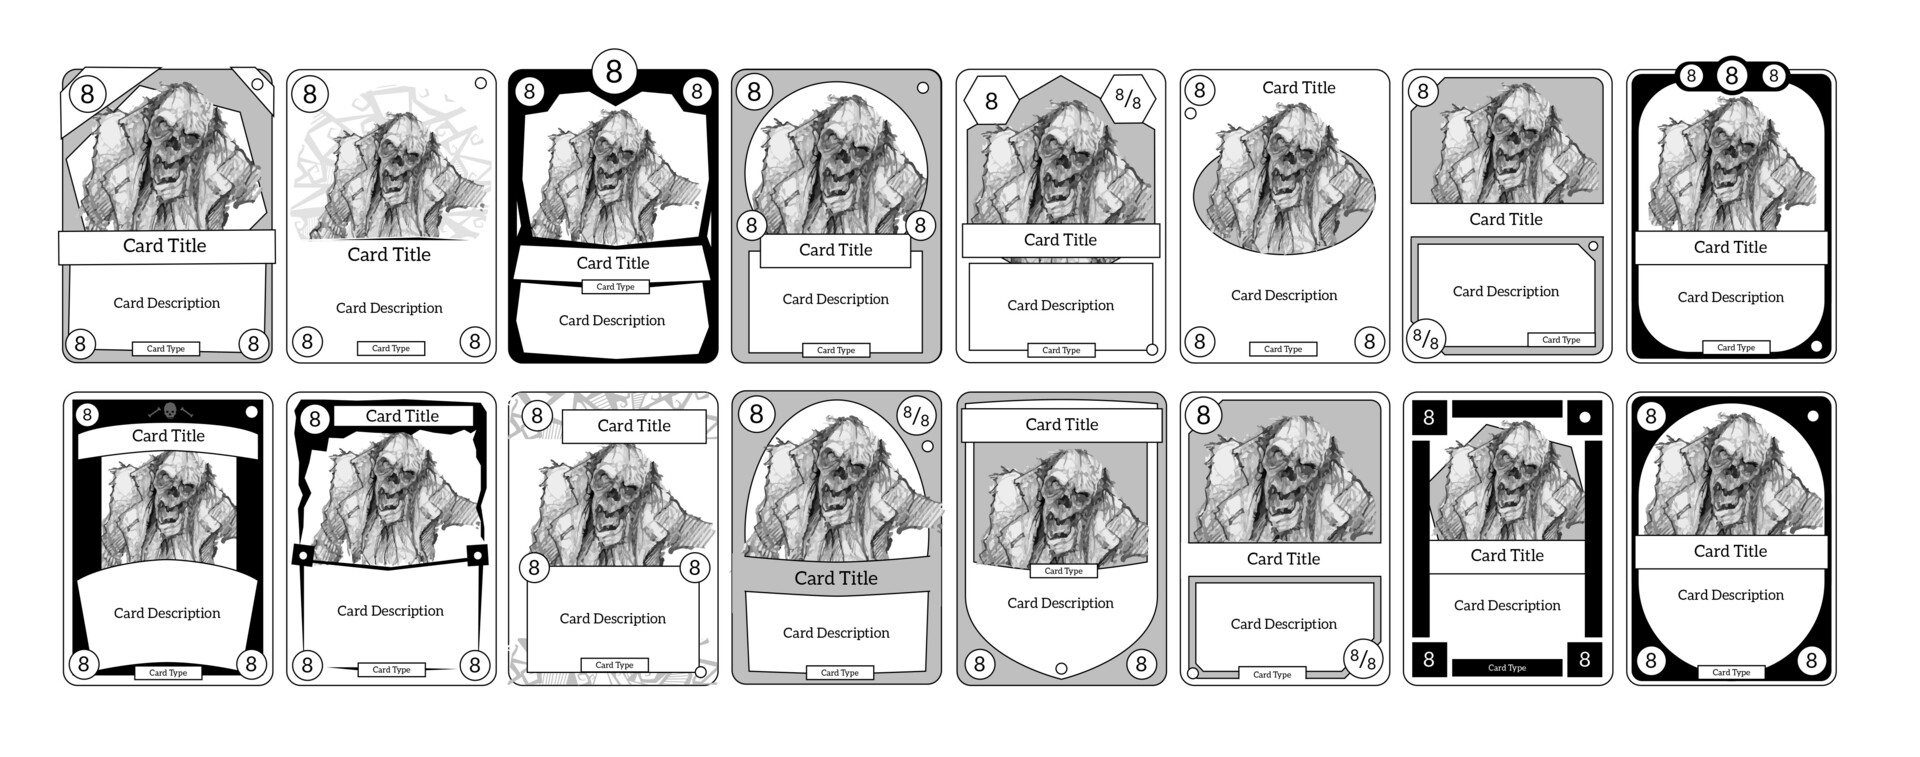 The more successful wireframes were picked out and I started doing some rough concepts for how the card image and text could be framed.  I kept this stage as quick shapes to allow fast iteration and discussions with the team.